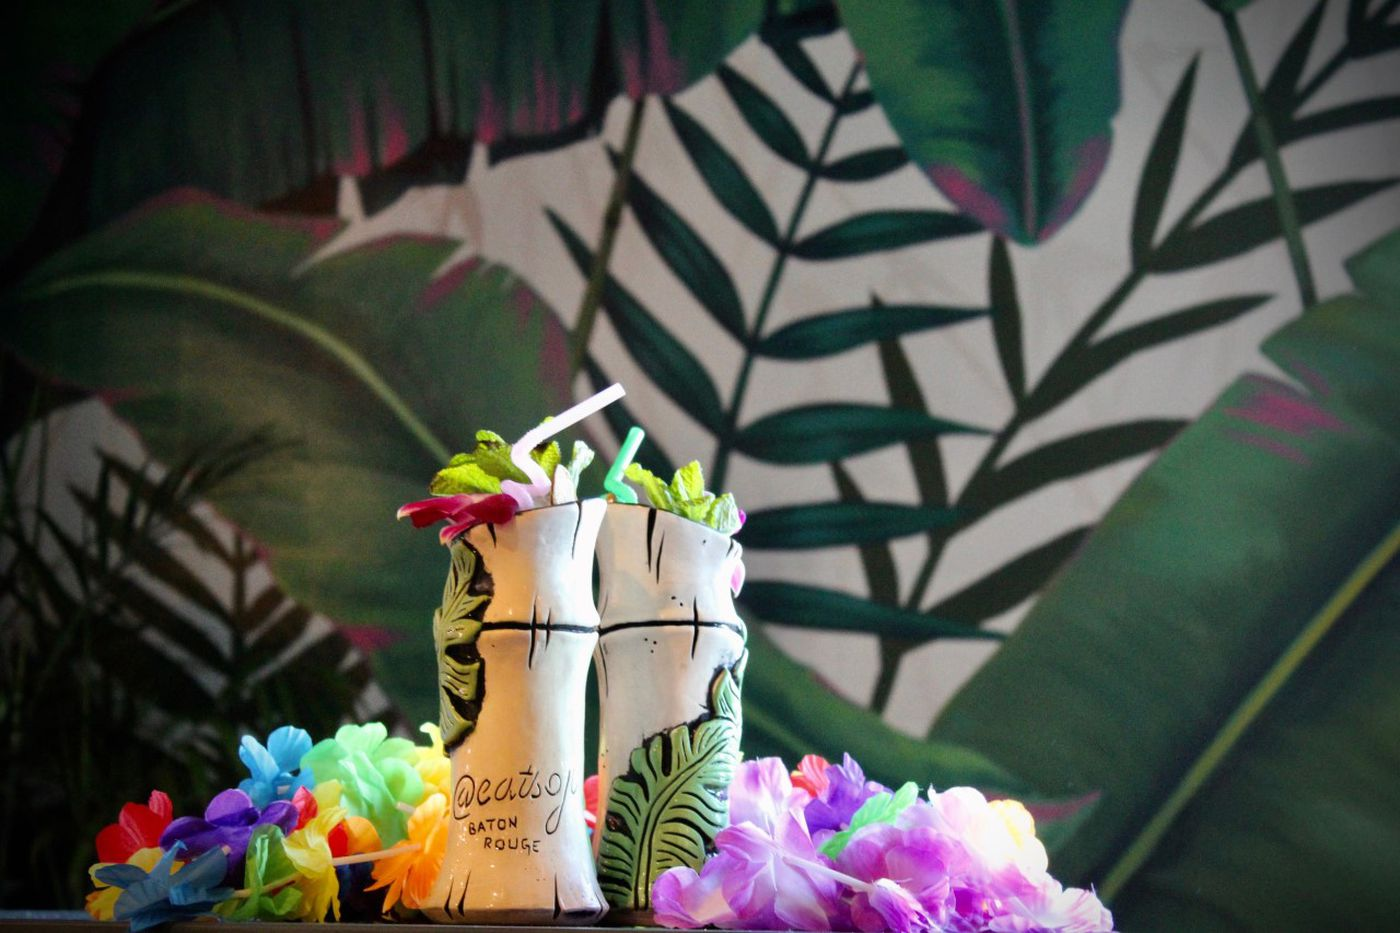 Omar Girona, owner of Oakwash, is bringing tiki mugs to his home town during a limited edition release at Soji: Modern Asian.